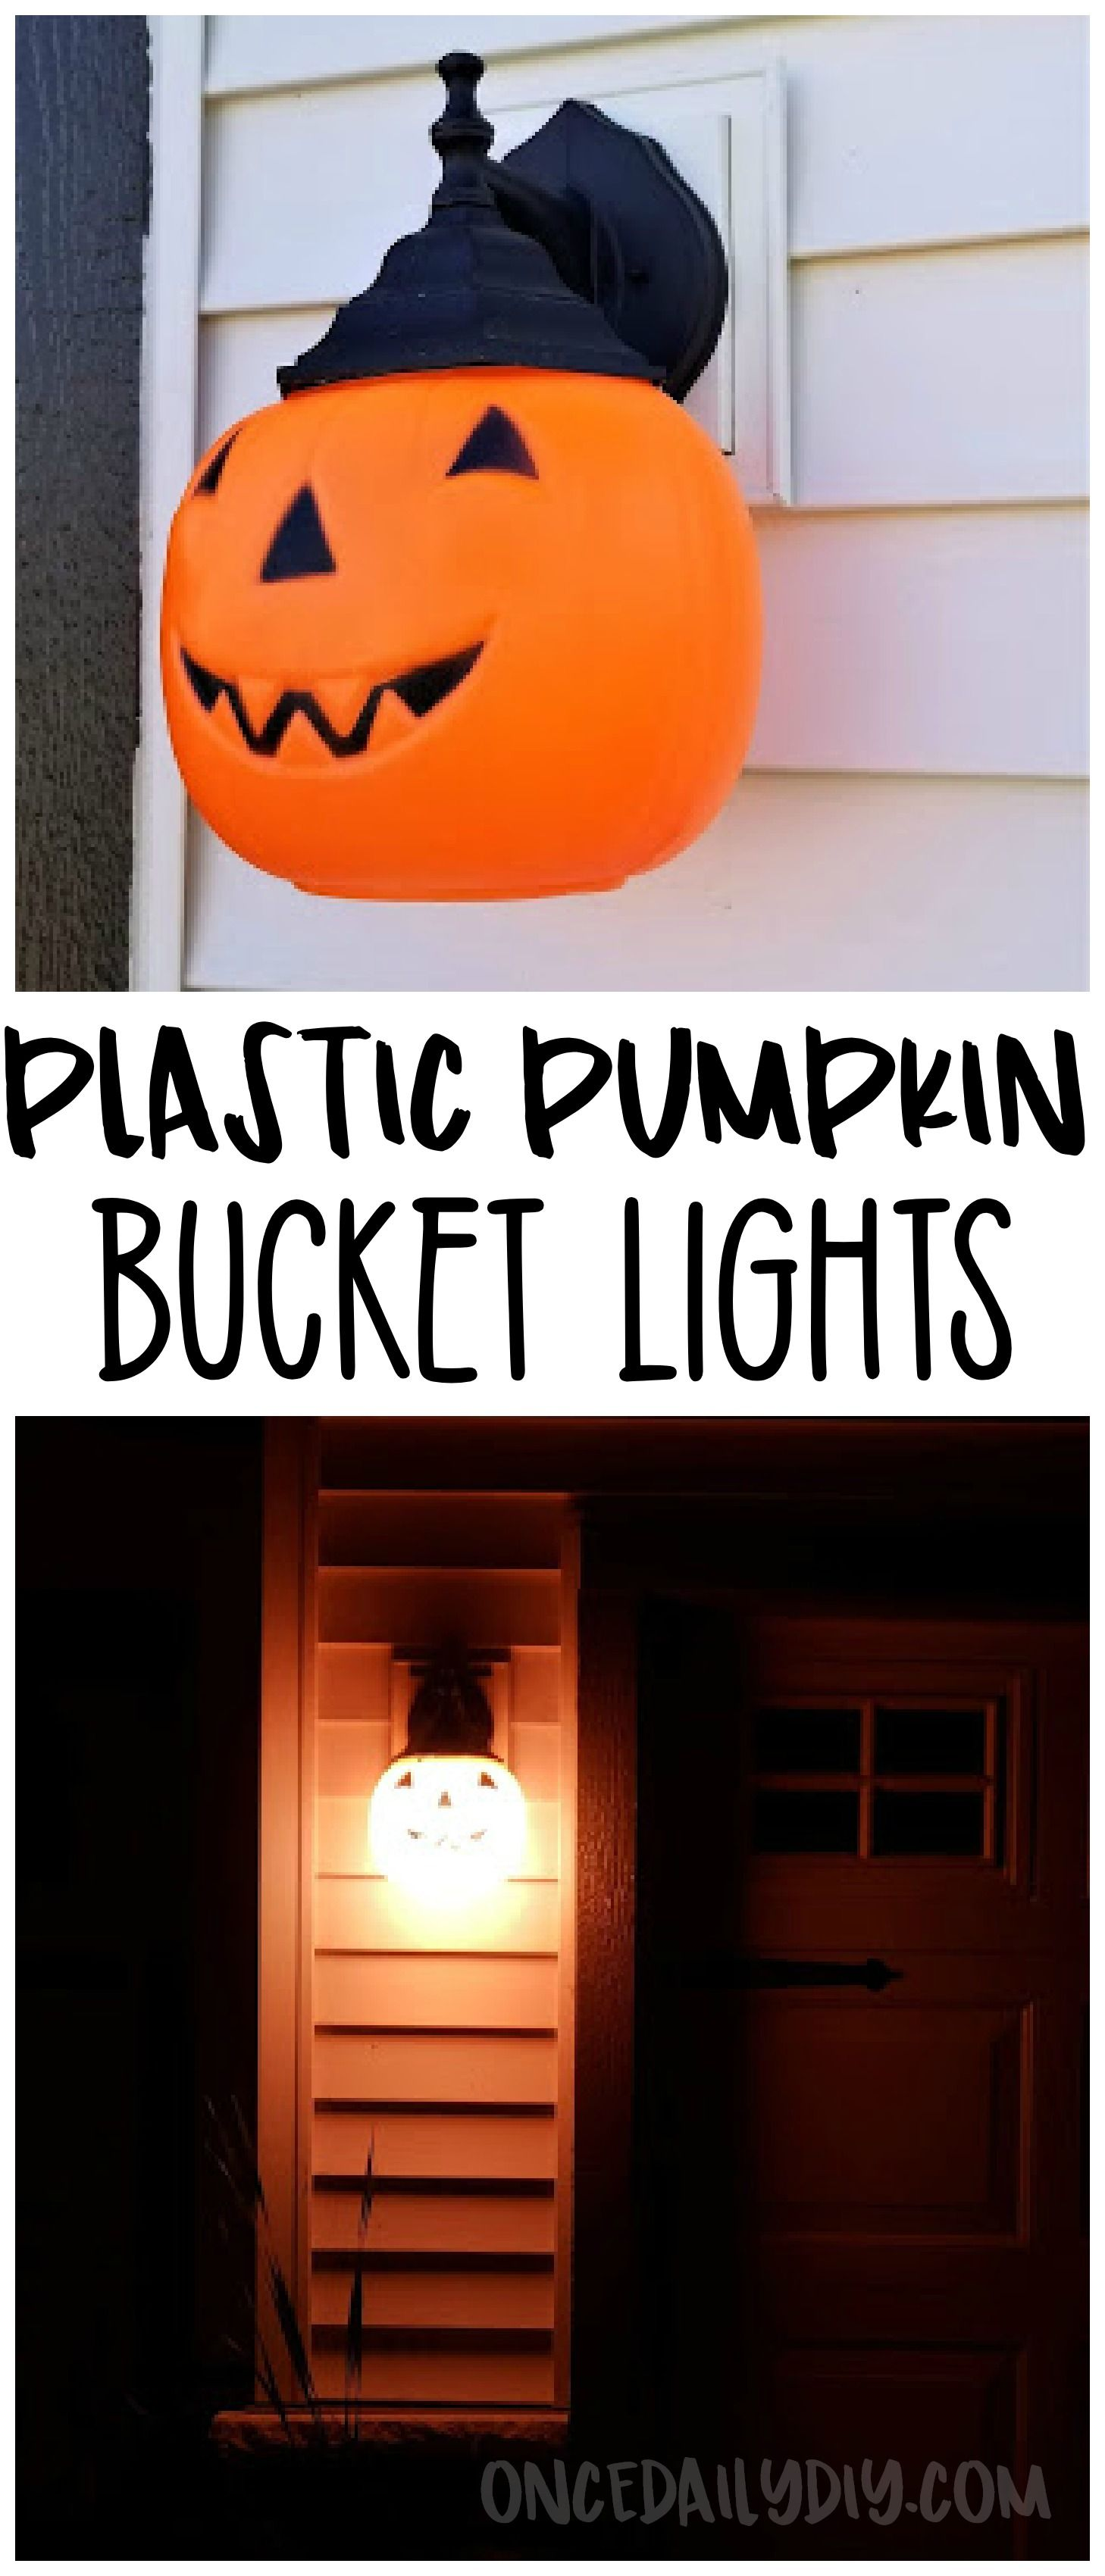 Use Dollar Plastic Pumpkin Buckets To Make Halloween Lanterns On - Use-pumpkins-to-decorate-your-house-for-halloween